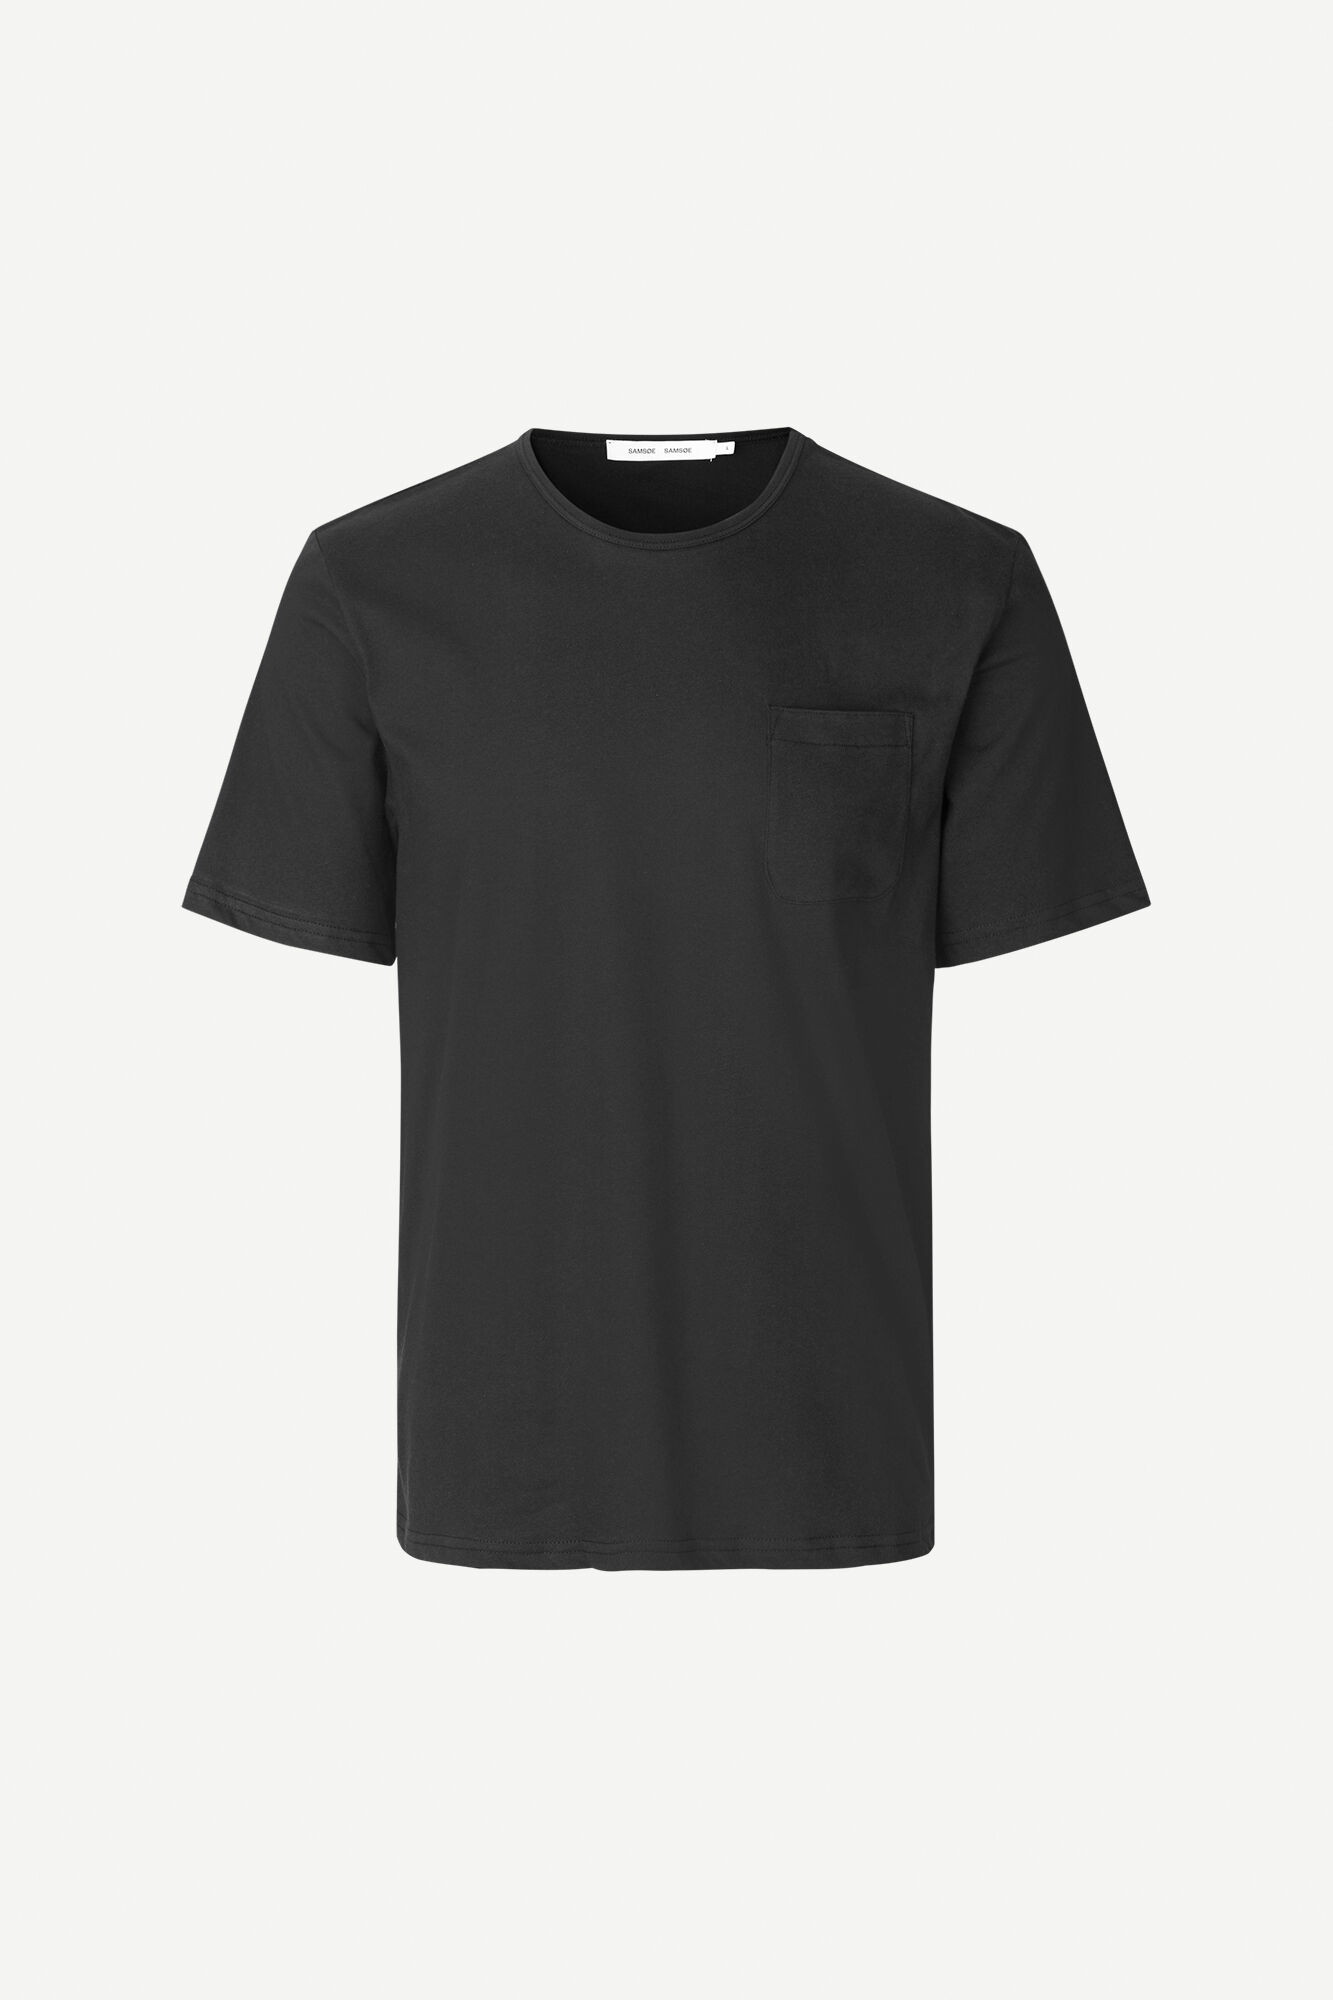 Finn t-shirt 11700, BLACK